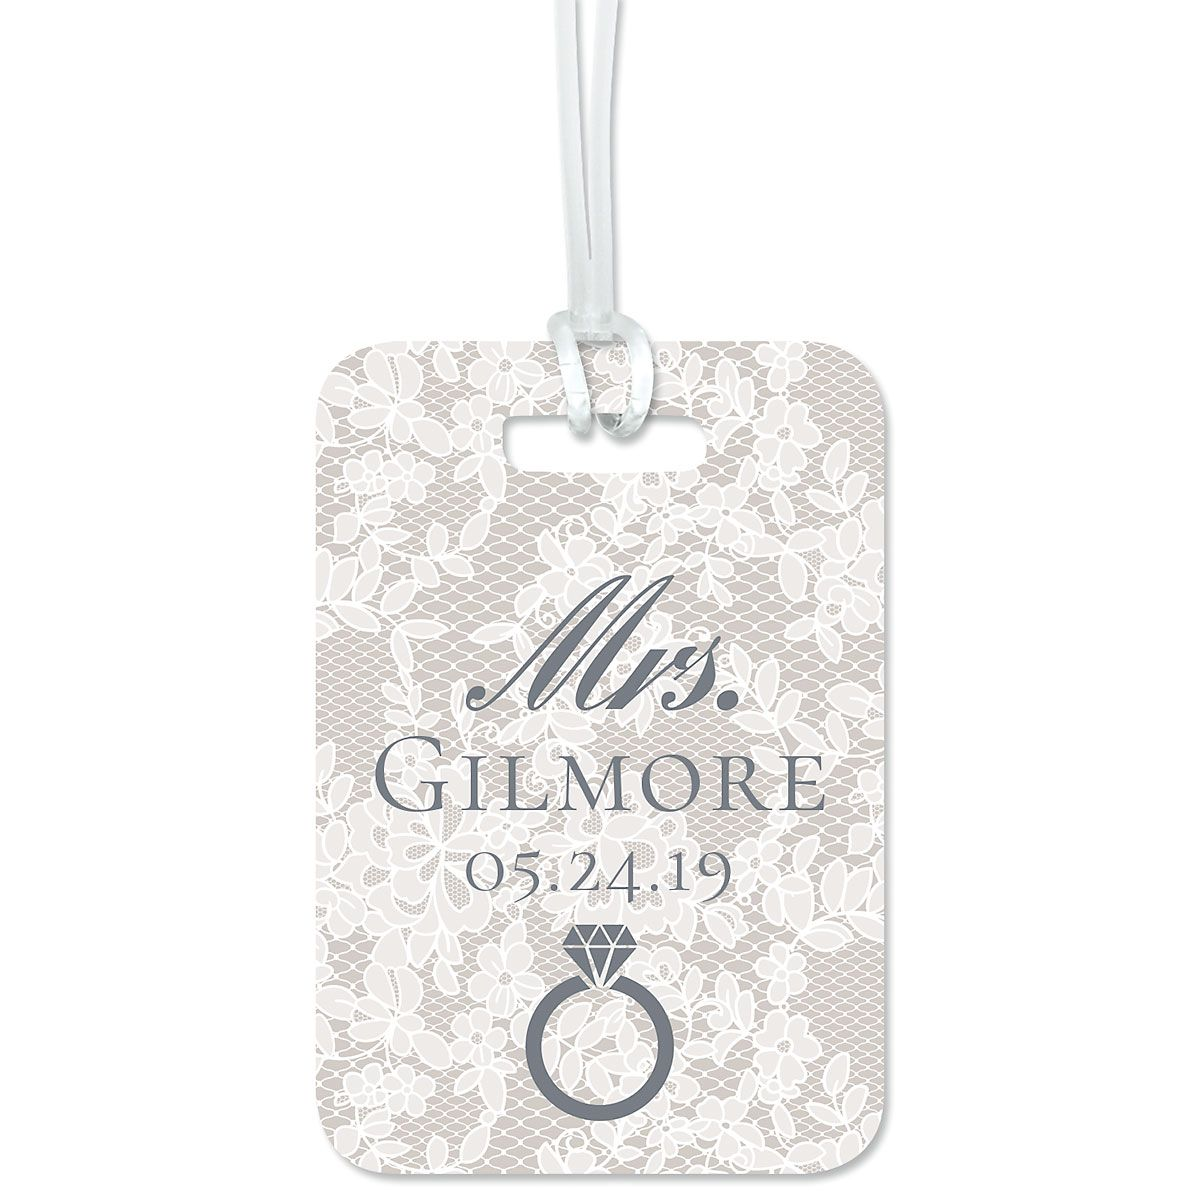 Chantilly Lace Luggage Tag